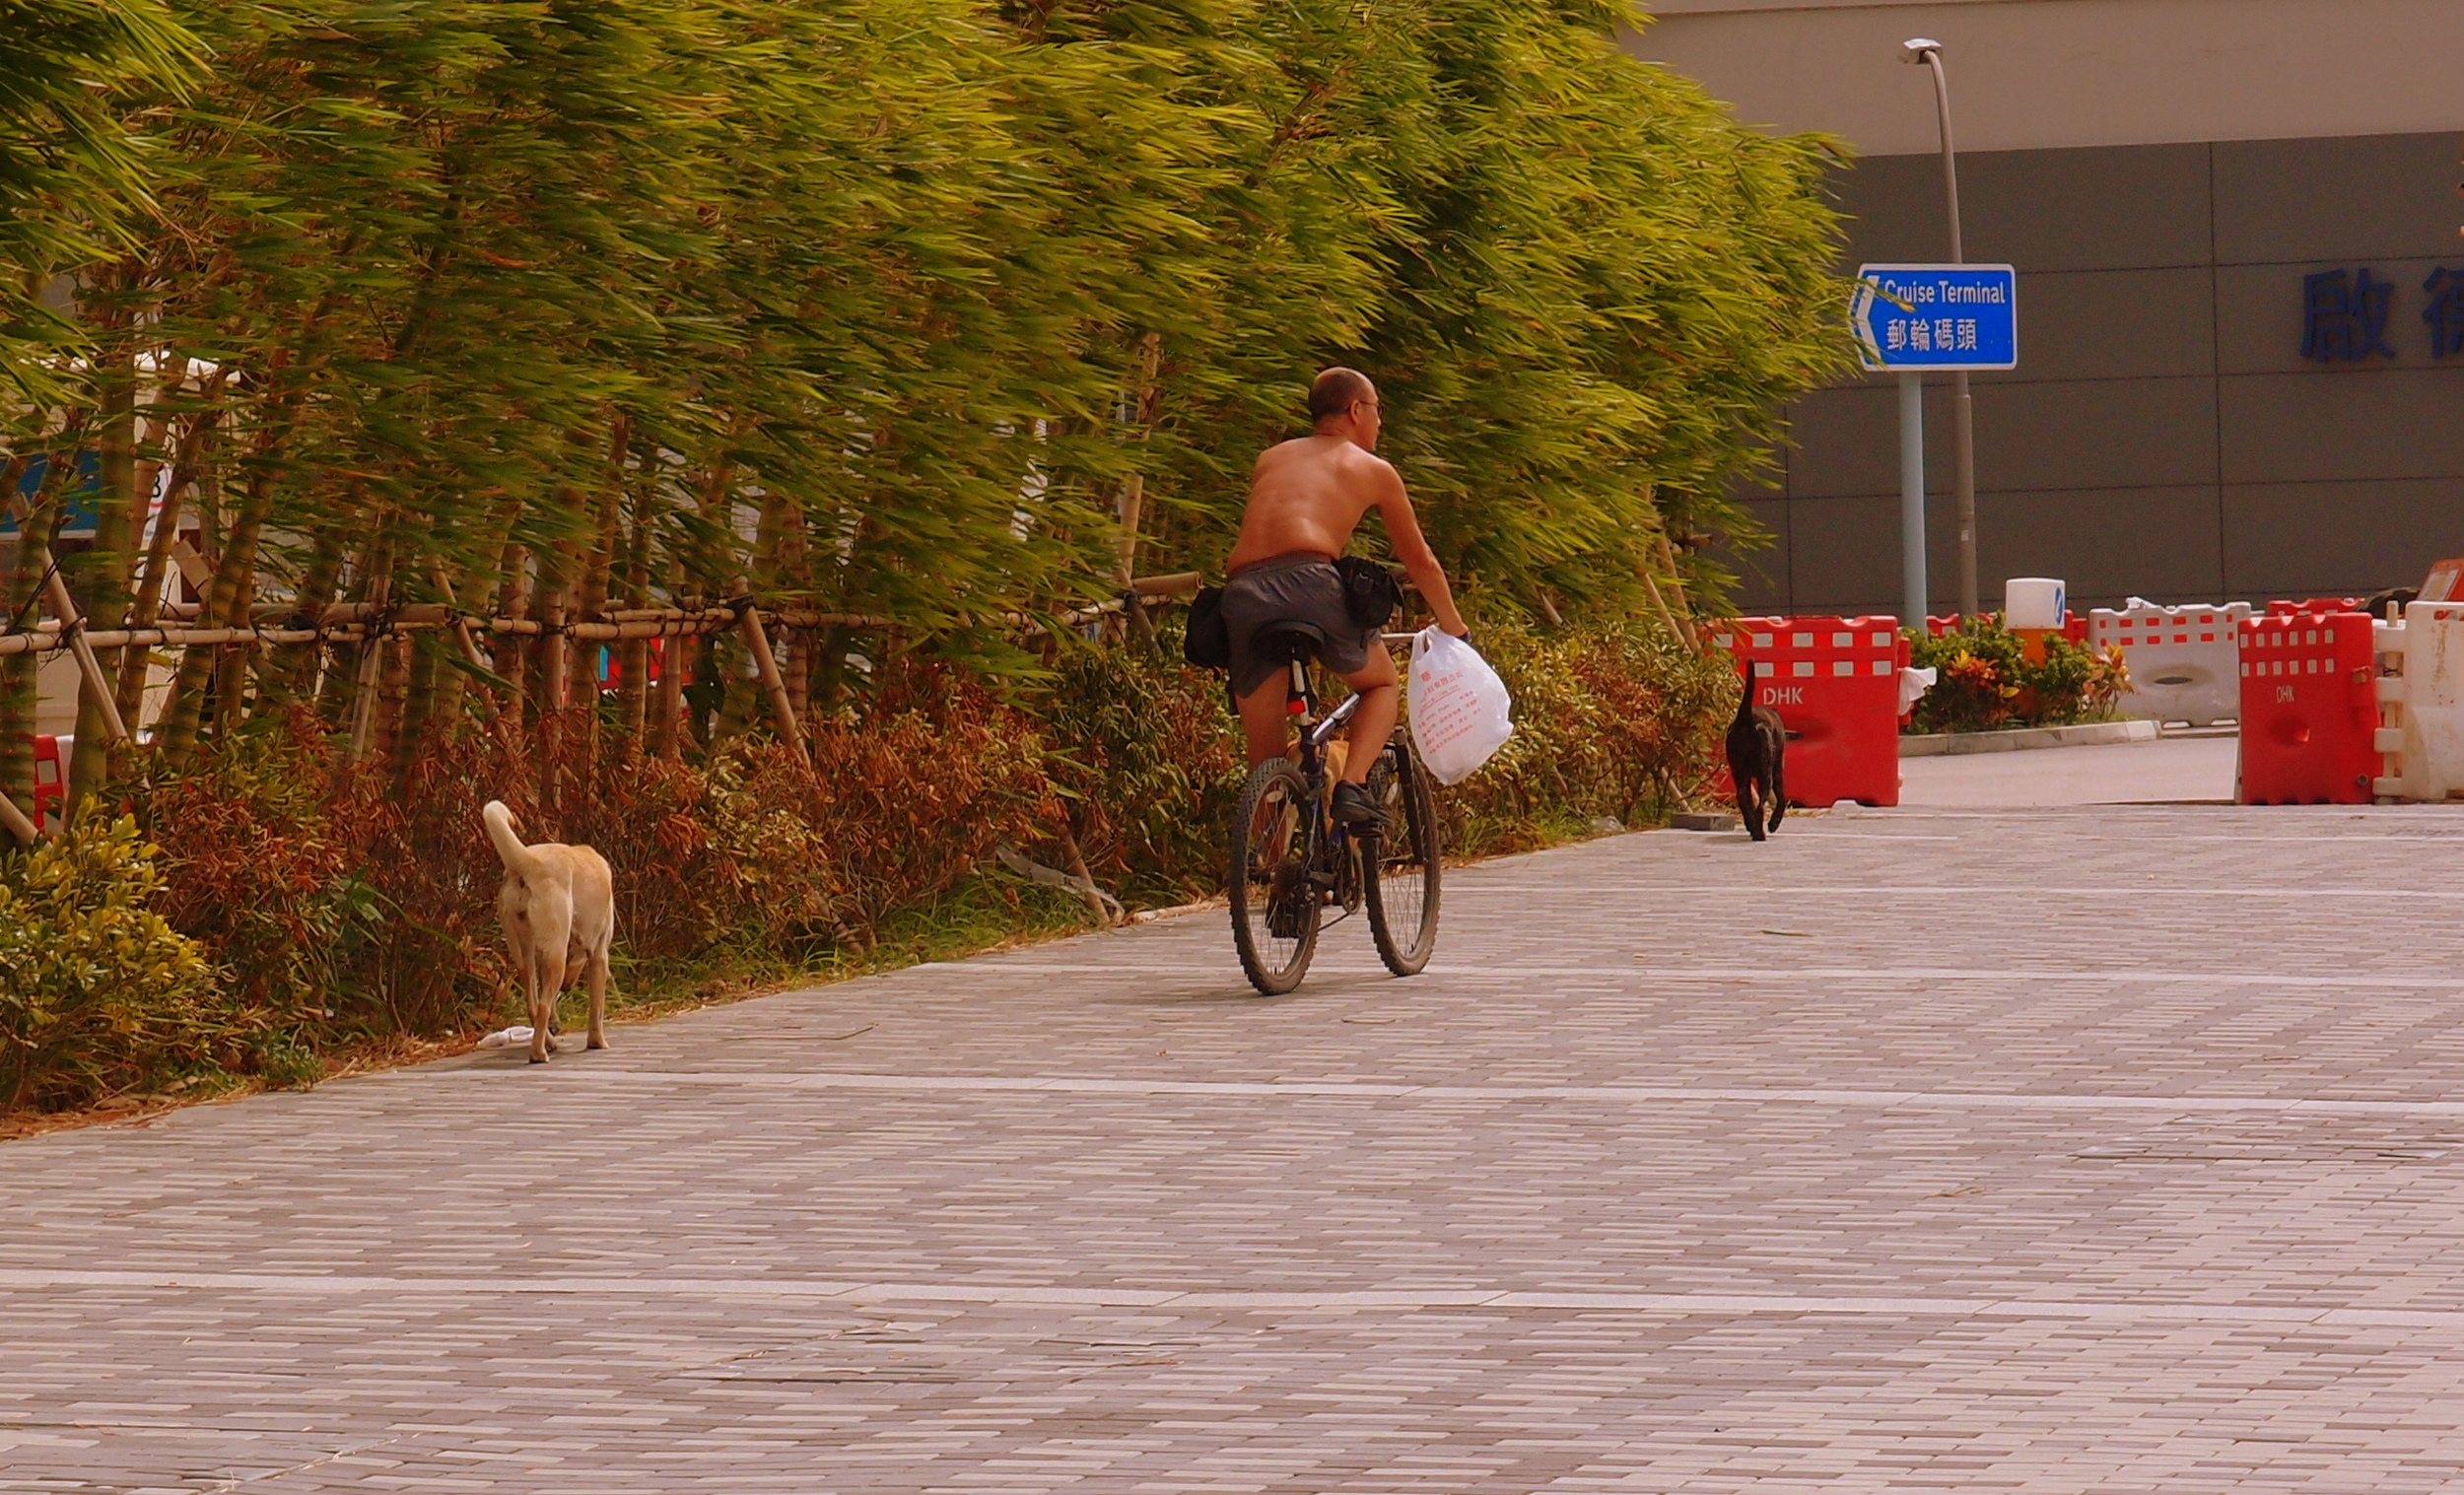 They then chased this bloke on a bike